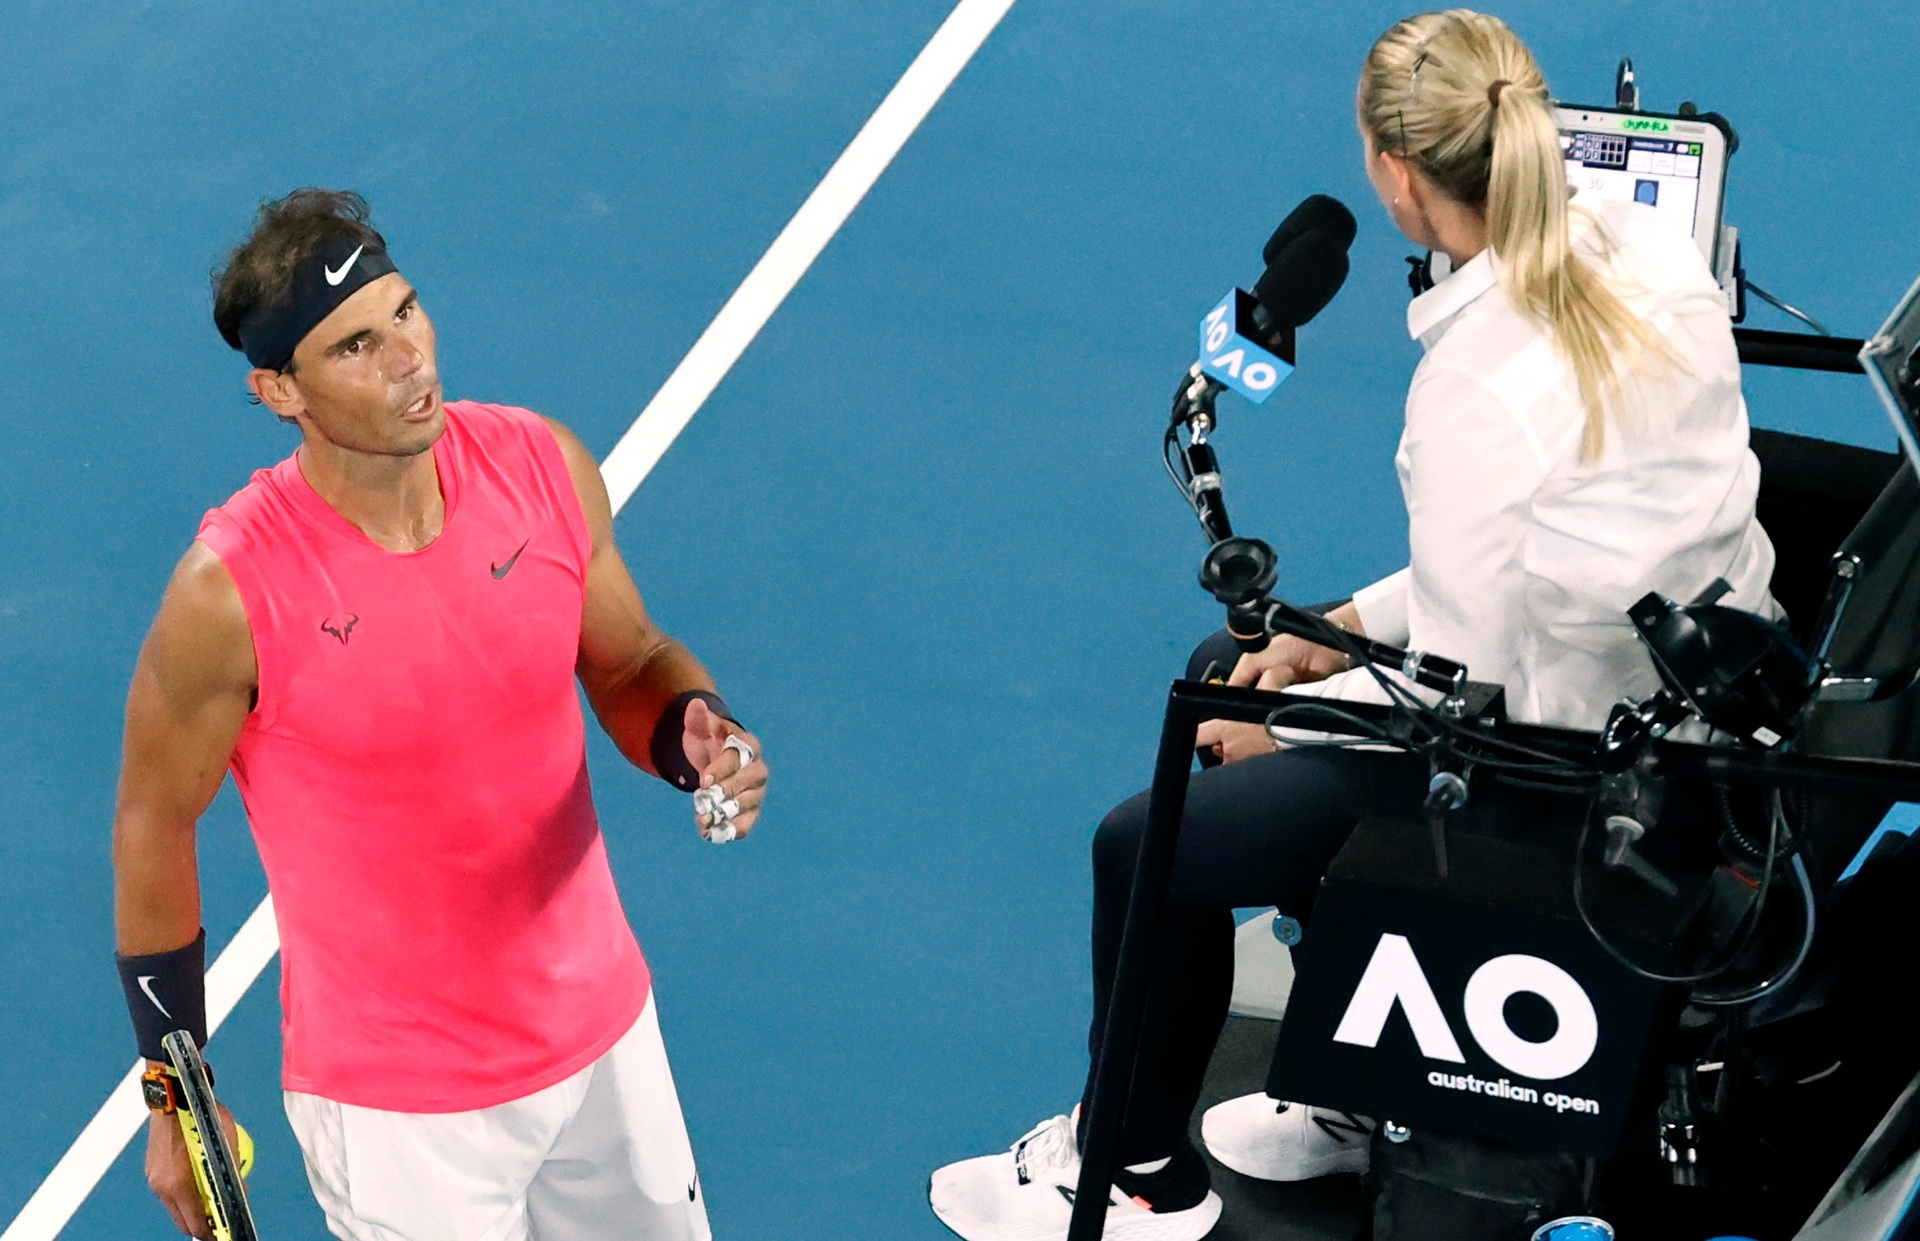 'You don't like good tennis': Nadal rages at umpire before shock exit